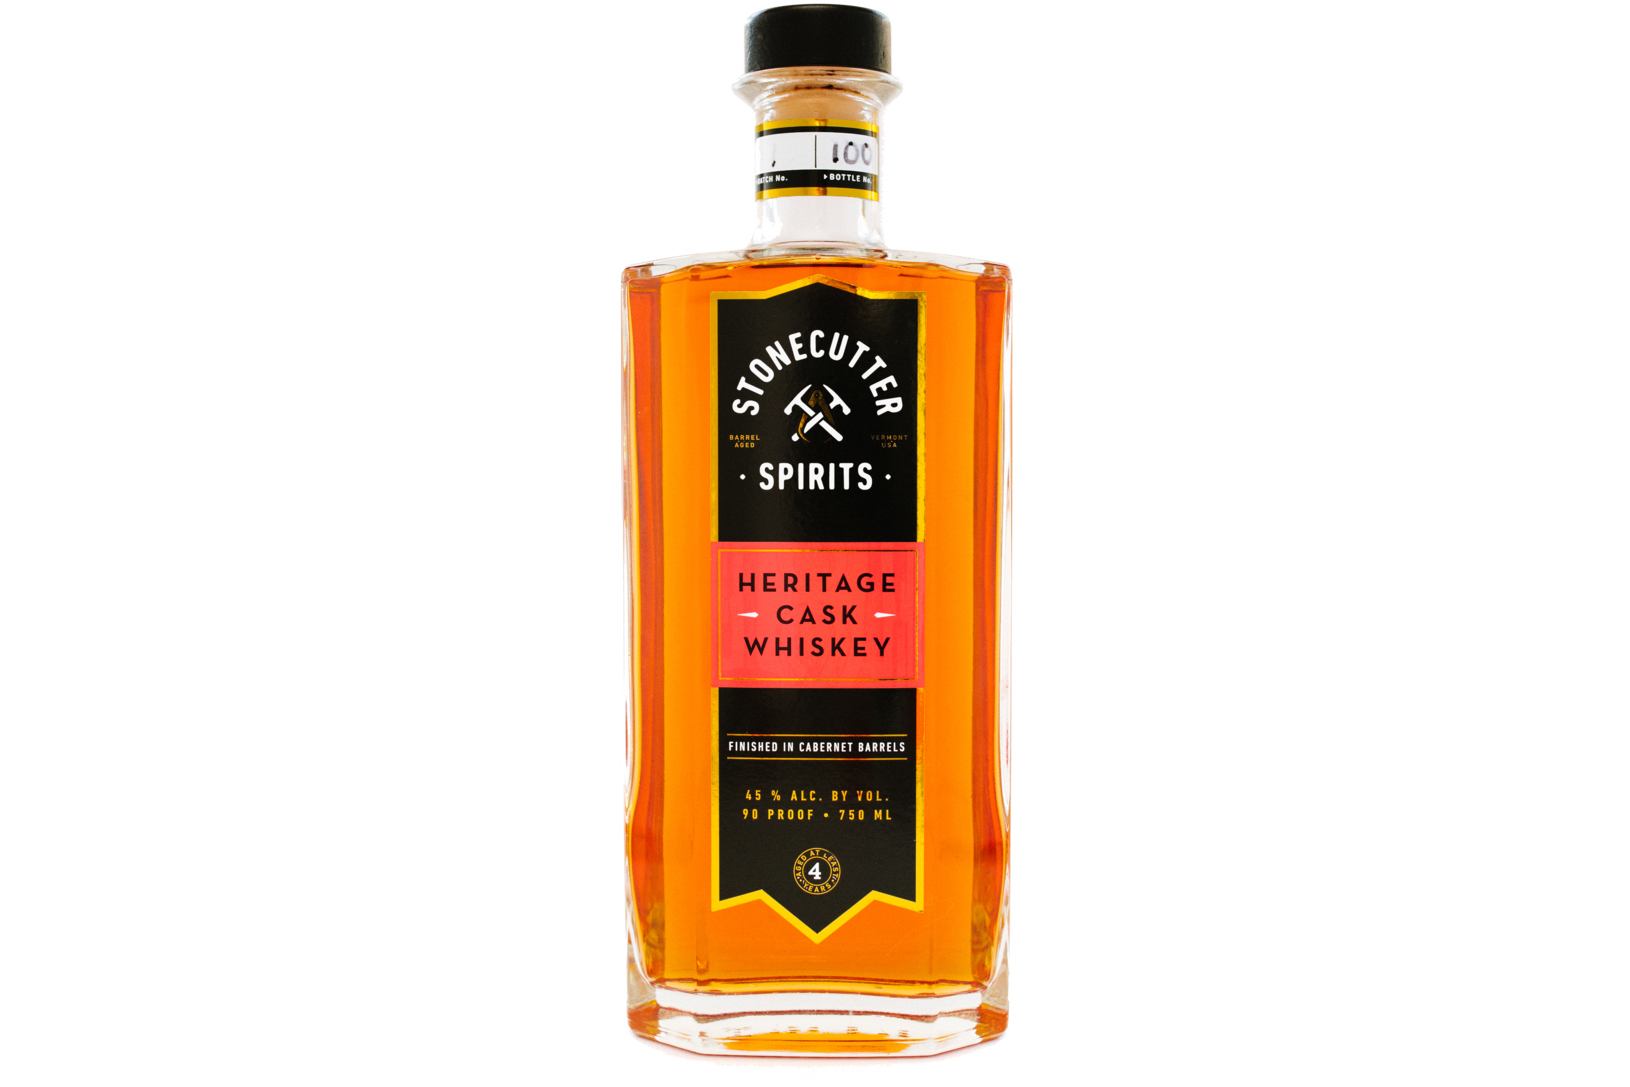 Stonecutter Spirits Heritage Cask Whiskey